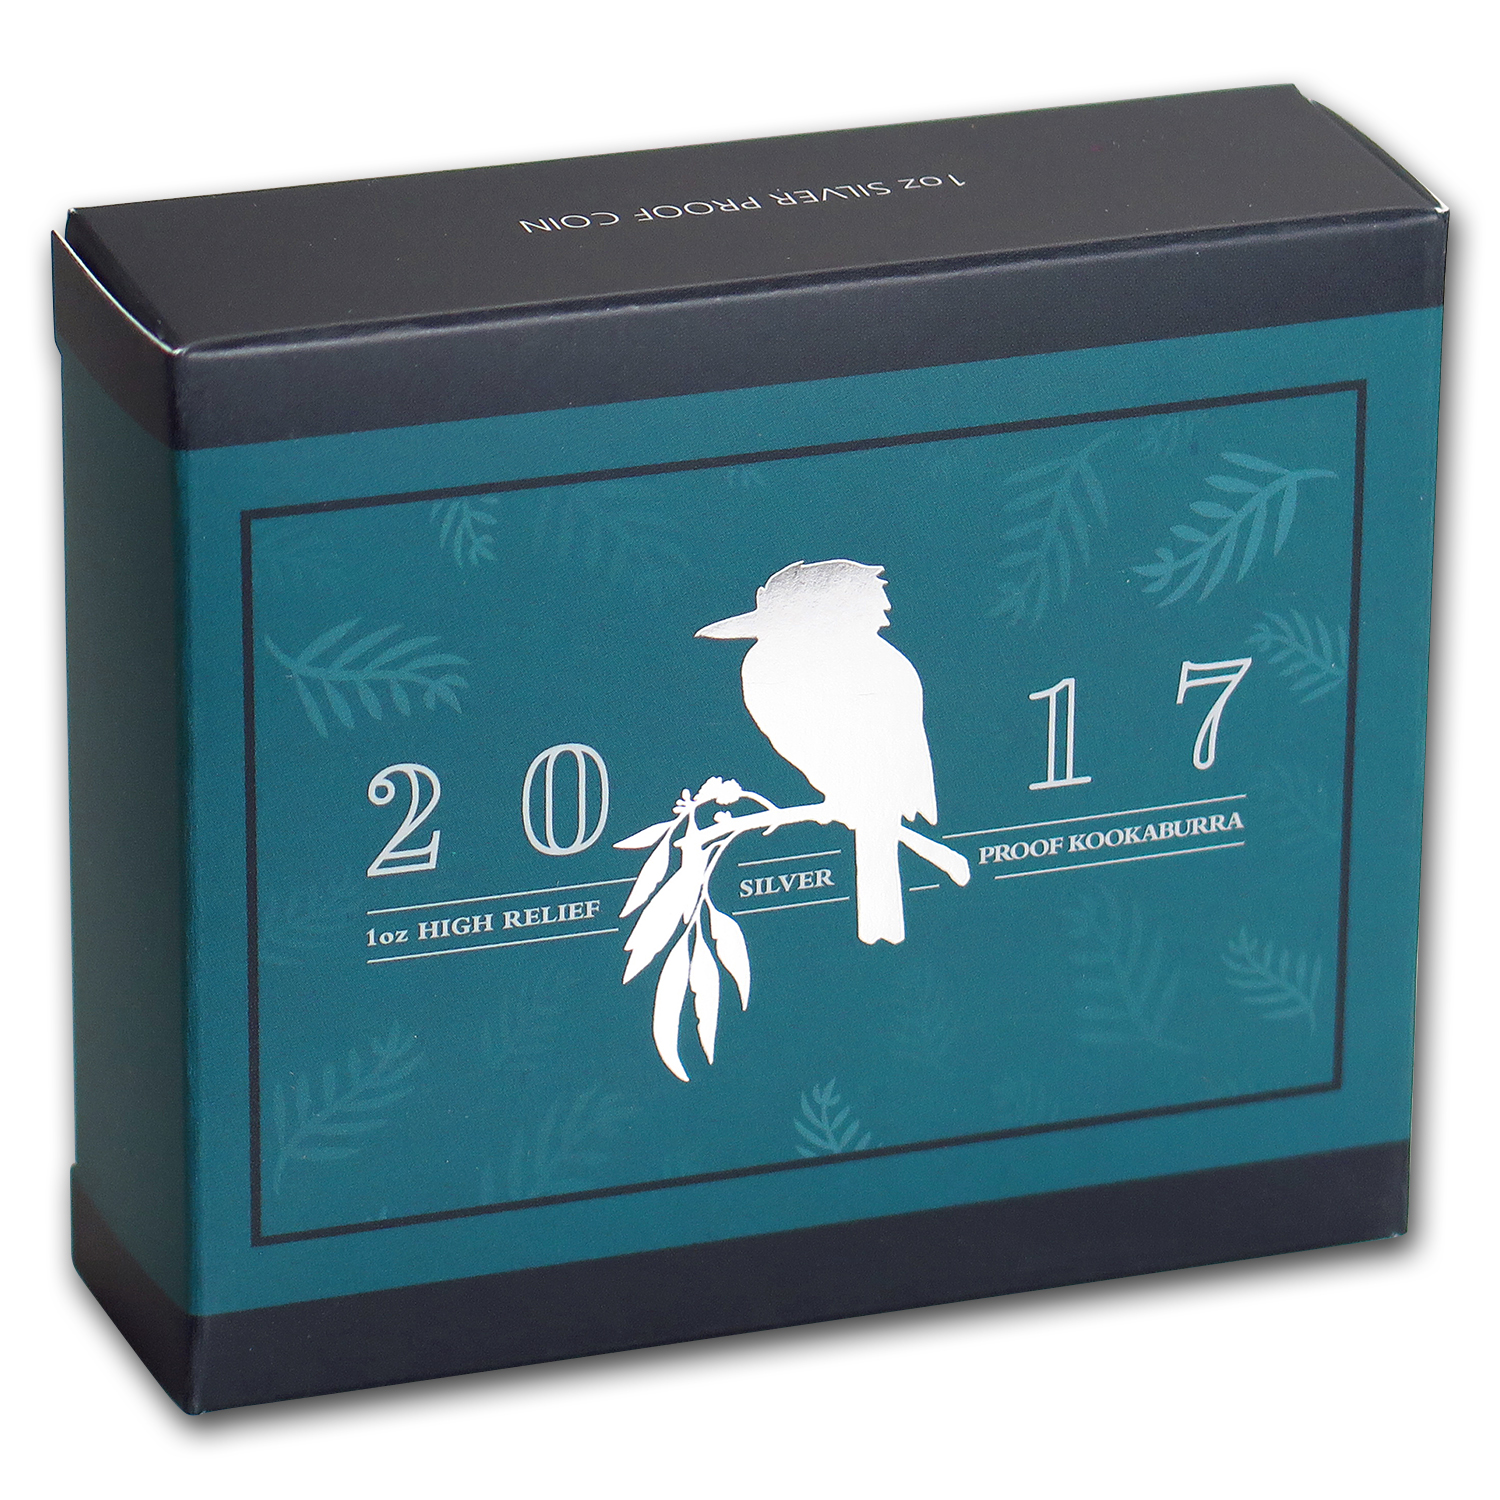 2017 Australia 1 oz Silver Kookaburra Proof (High Relief)